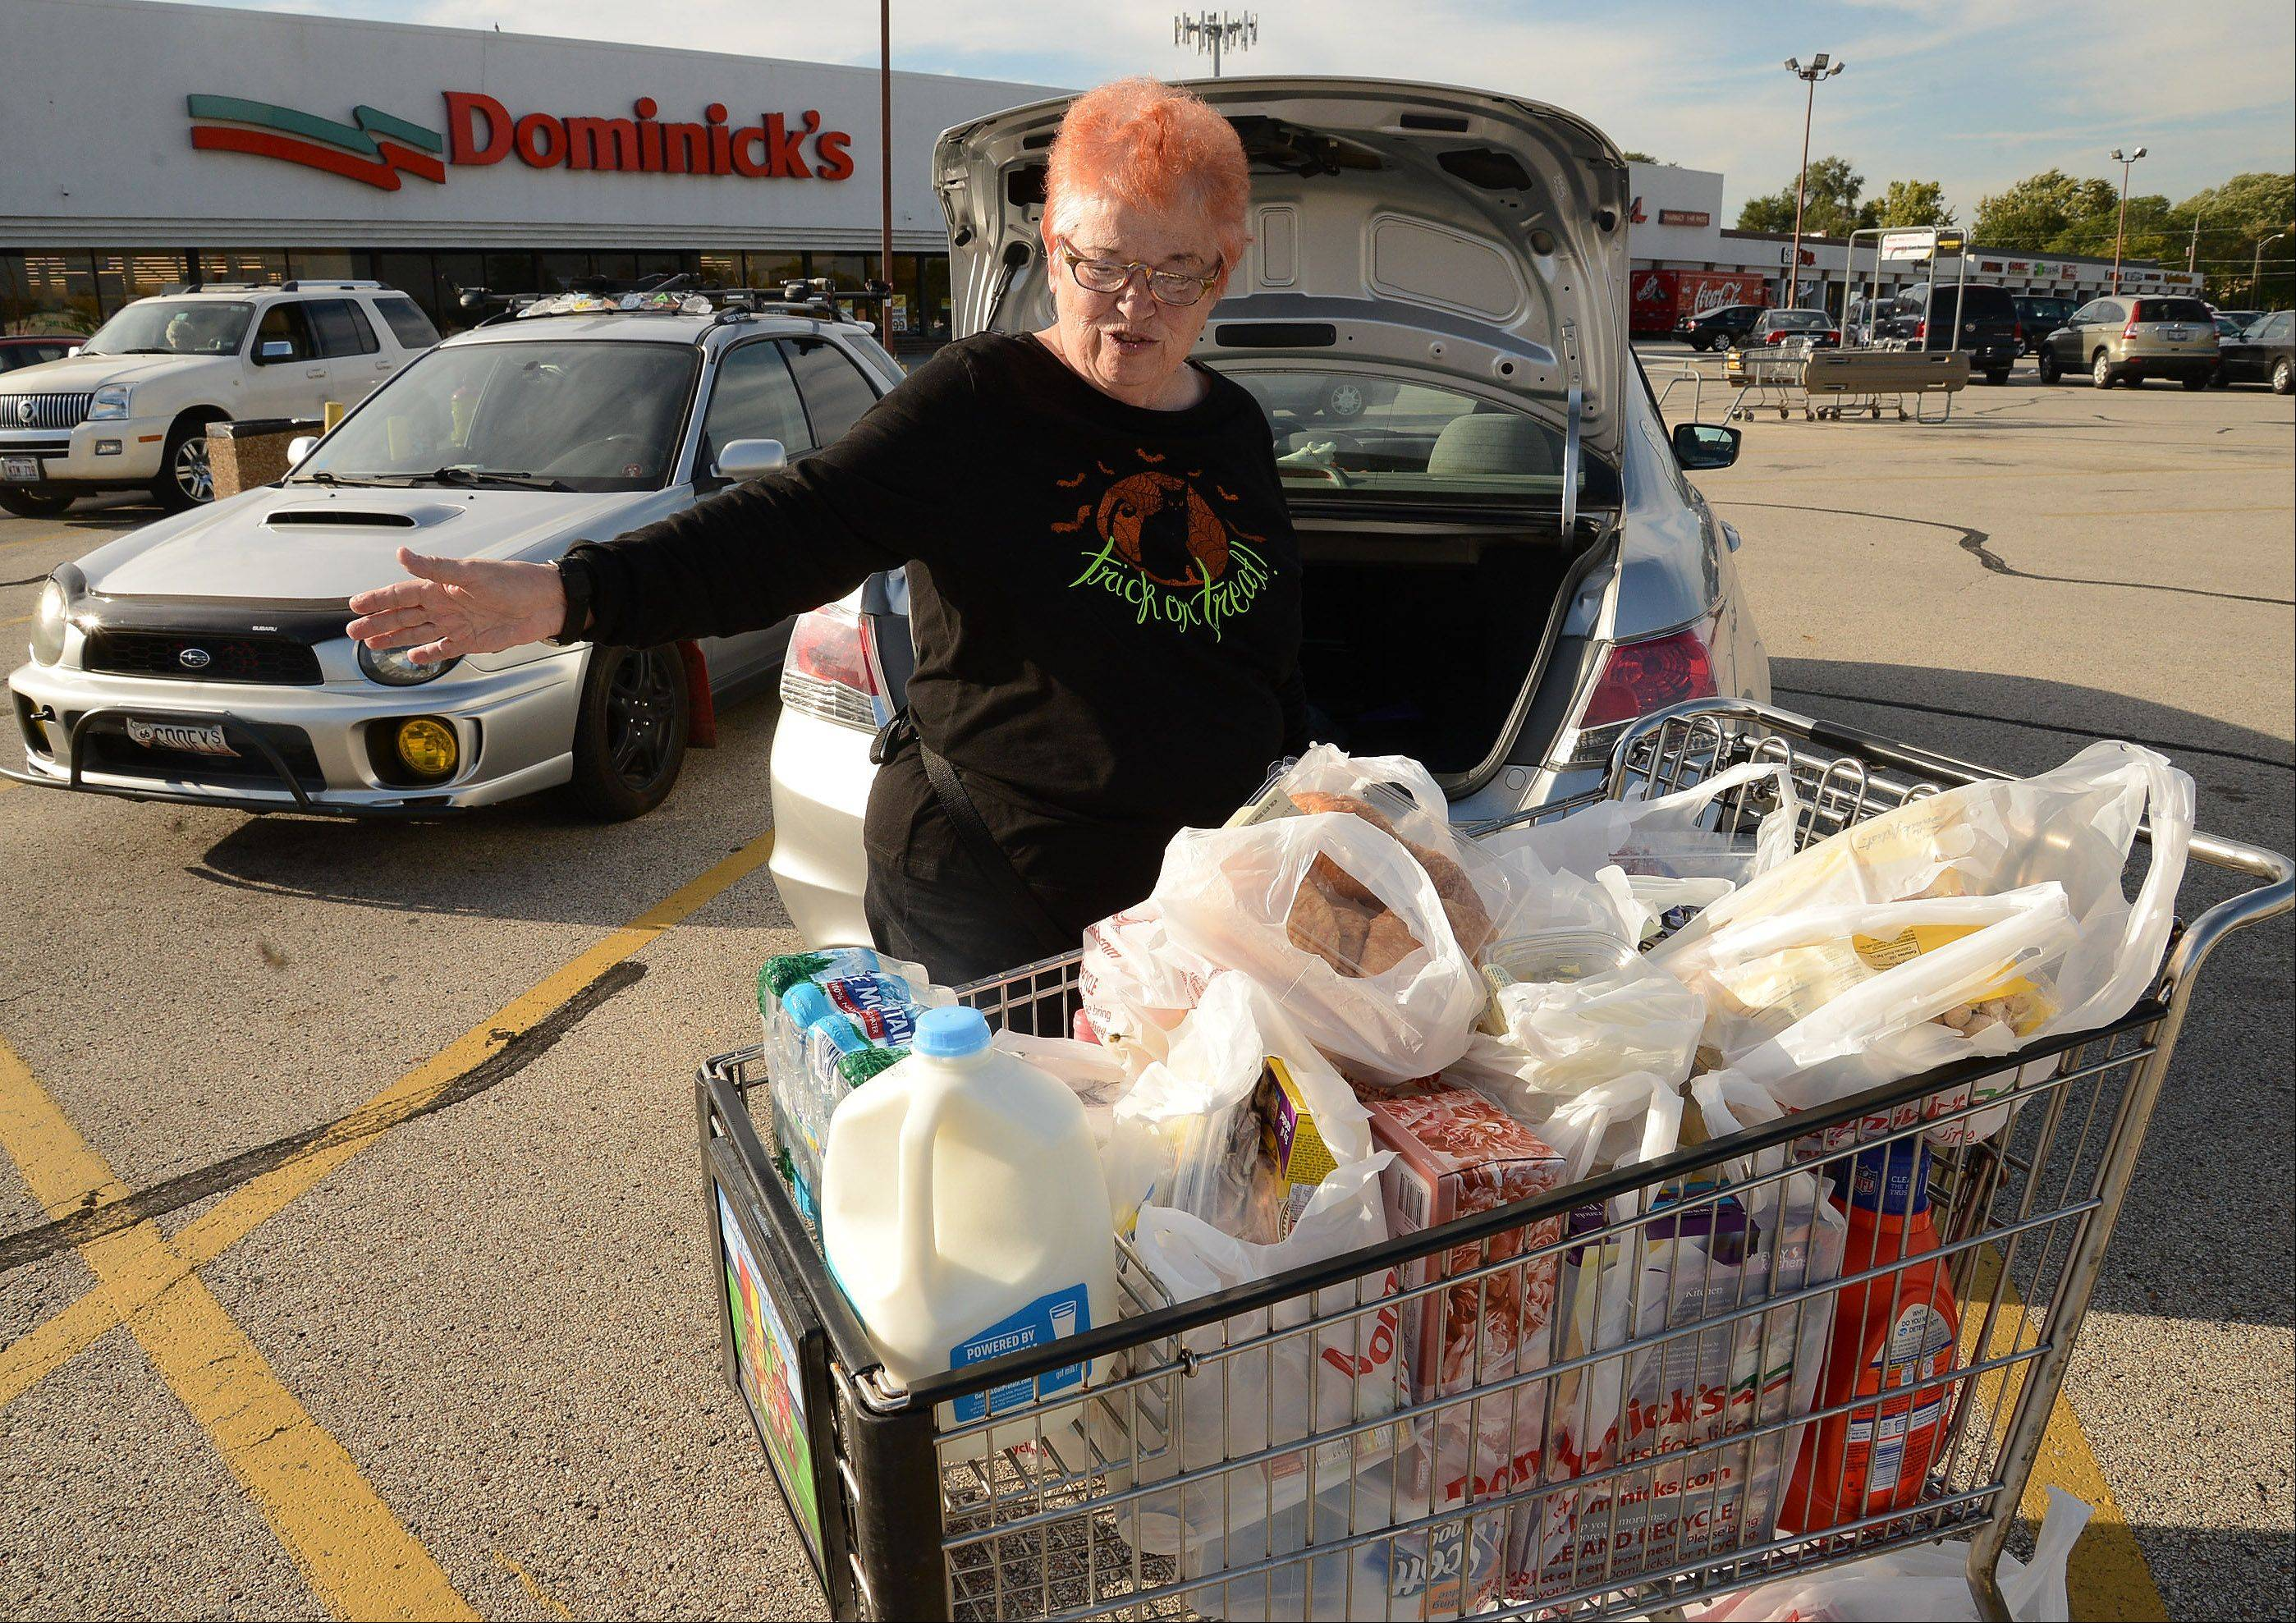 Pat Sconza of Mount Prospect, a Dominick's shopper for 40 years, bought $270 worth of groceries Thursday at the store at Golf and Elmhurst roads in Mount Prospect. She said she was upset the stores are being sold off or closed.